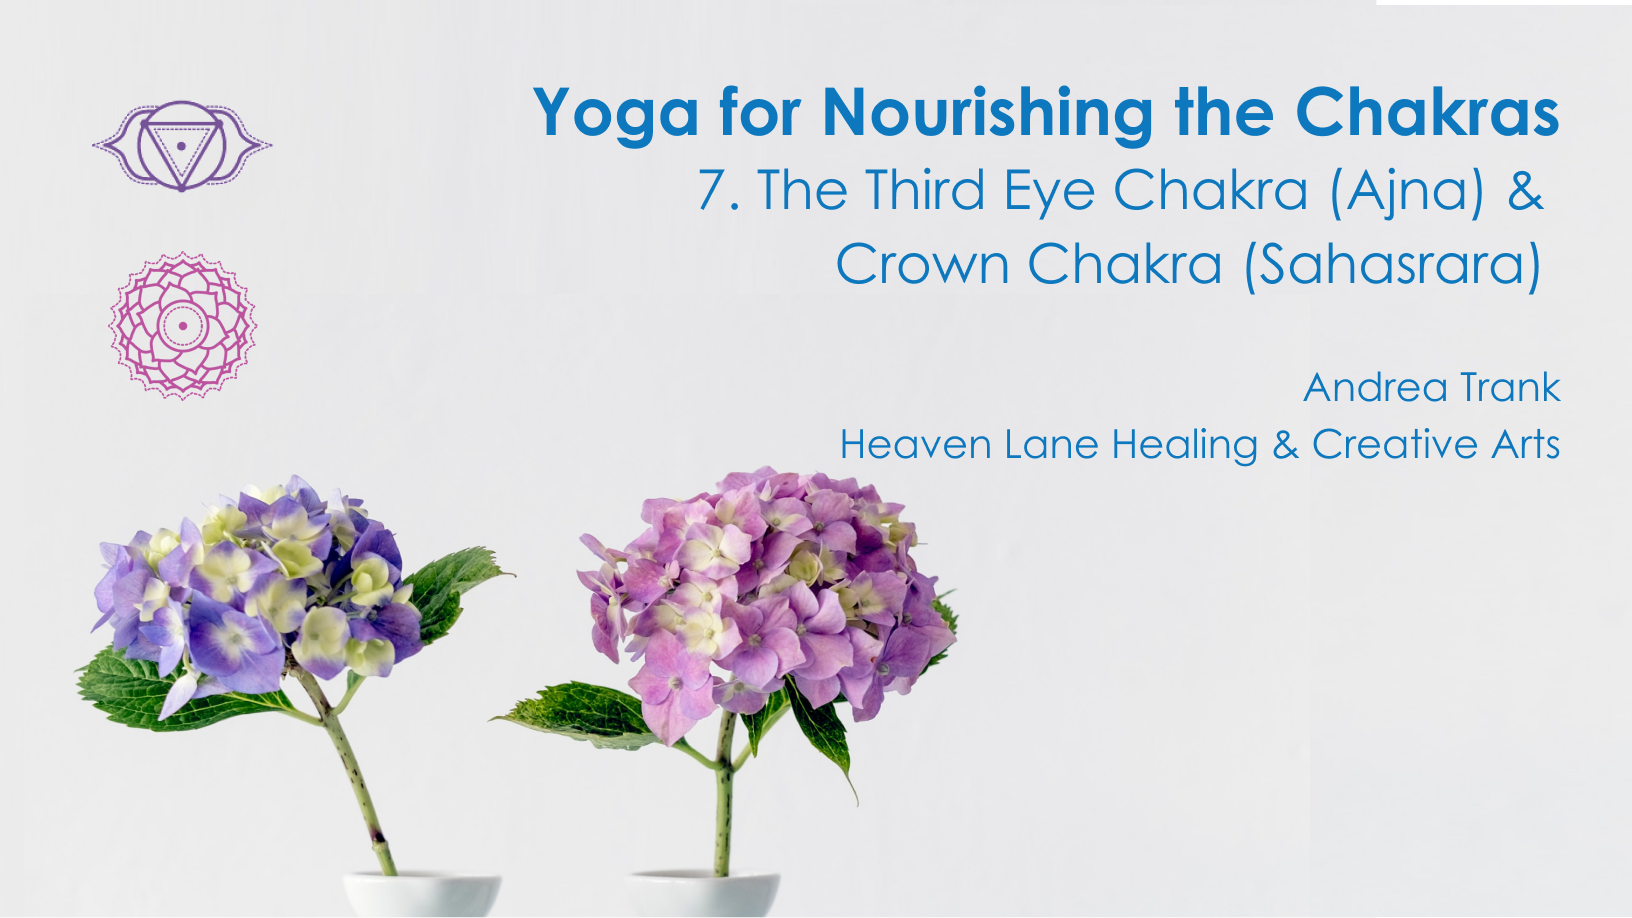 Third Eye & Crown Chakra